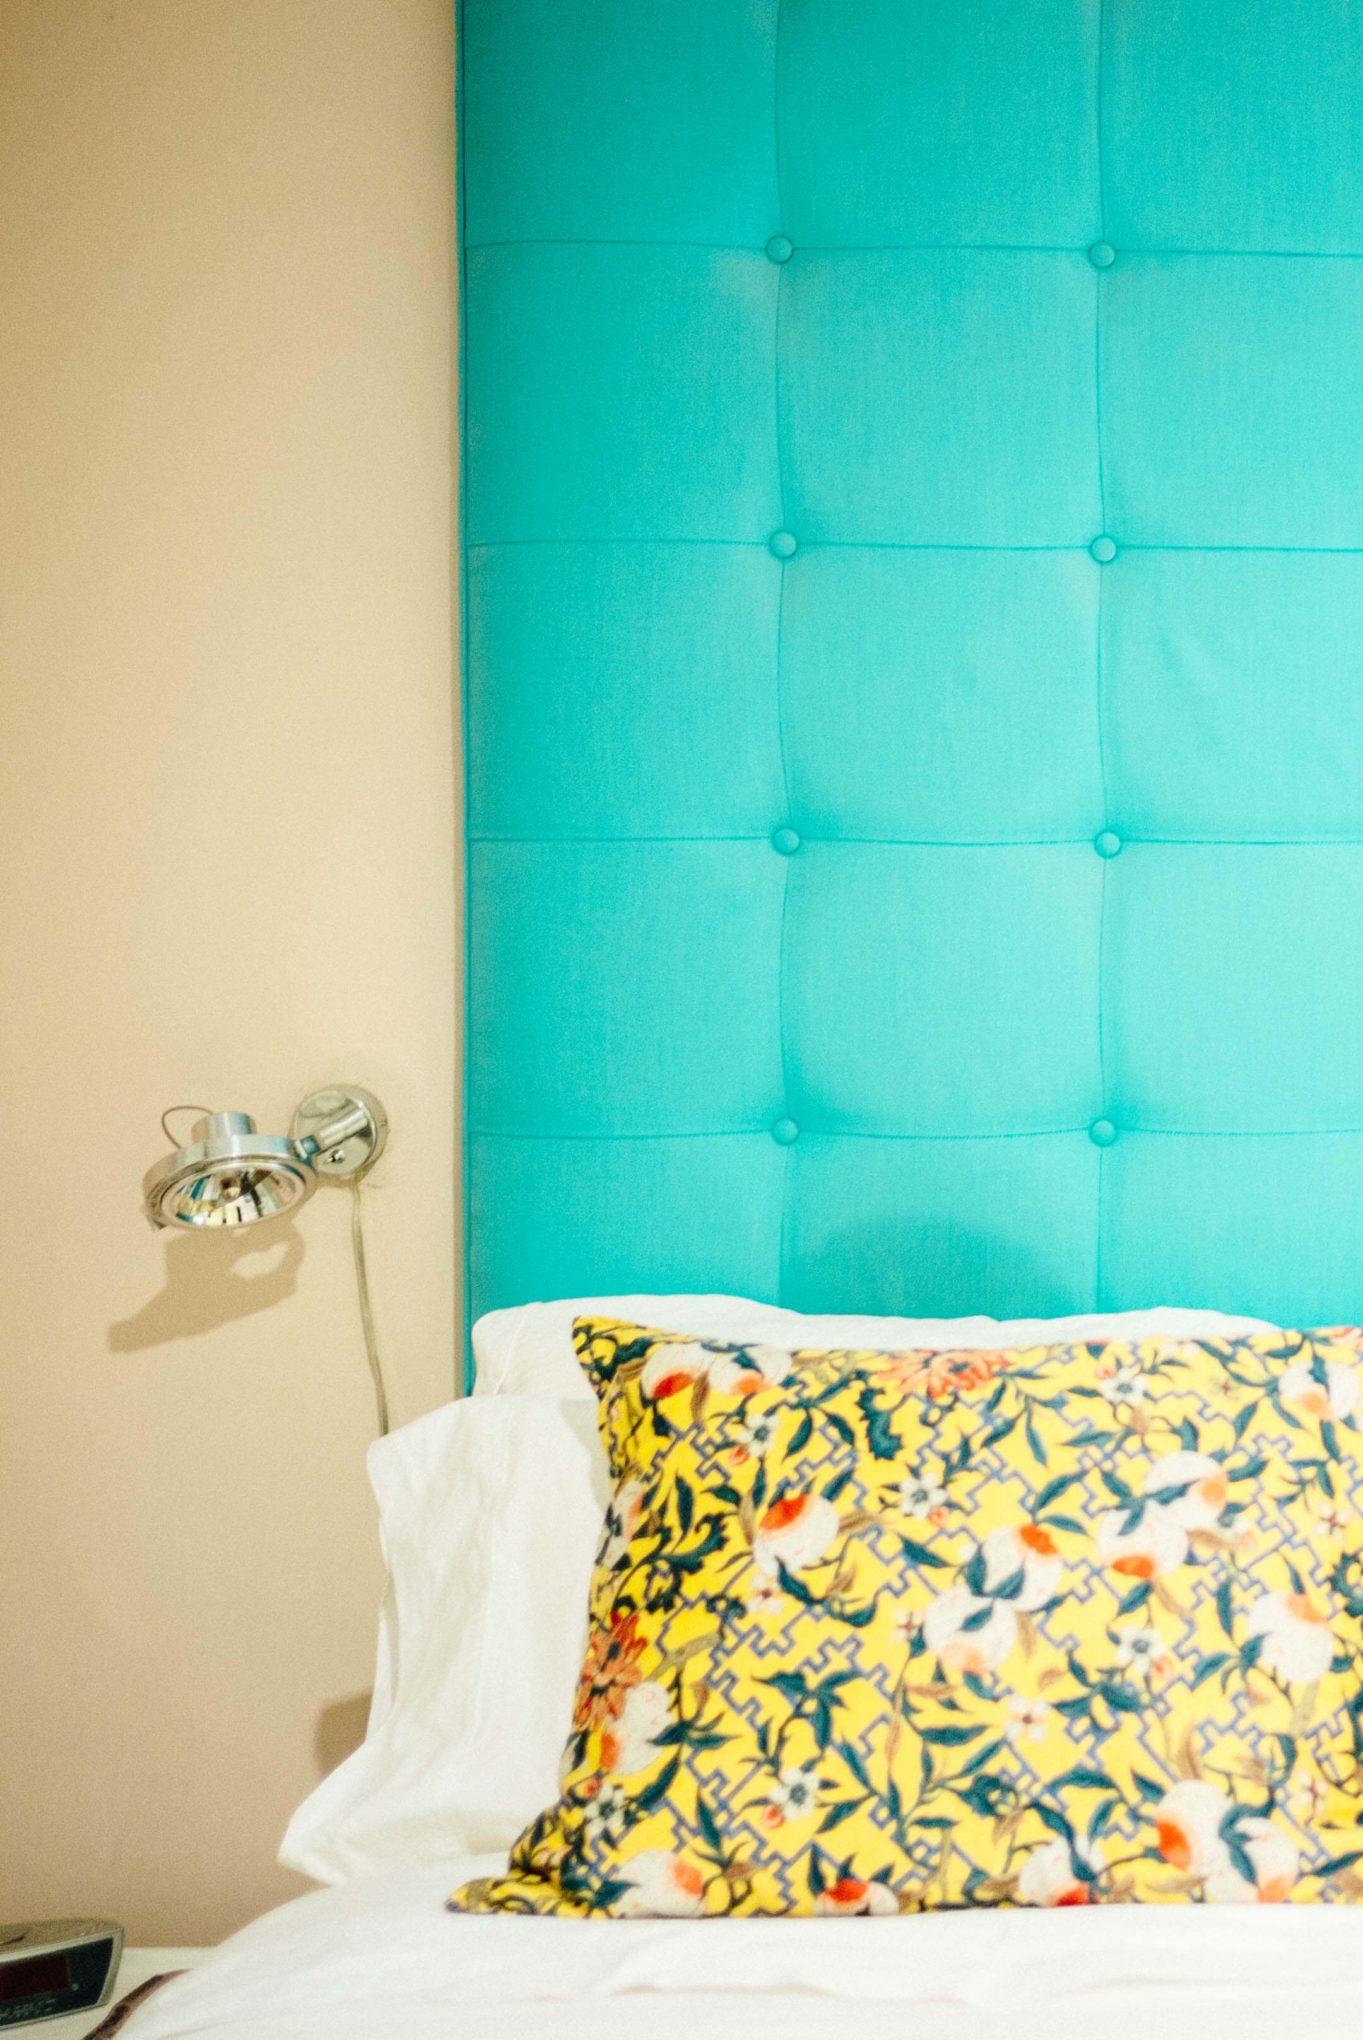 The Taste SF takes you behind the Instagram photo sensation That Pink Door in Palm Springs. Explore the interior decor and bedrooms in this mid-century Palm Springs house. We love the high teal headboard.